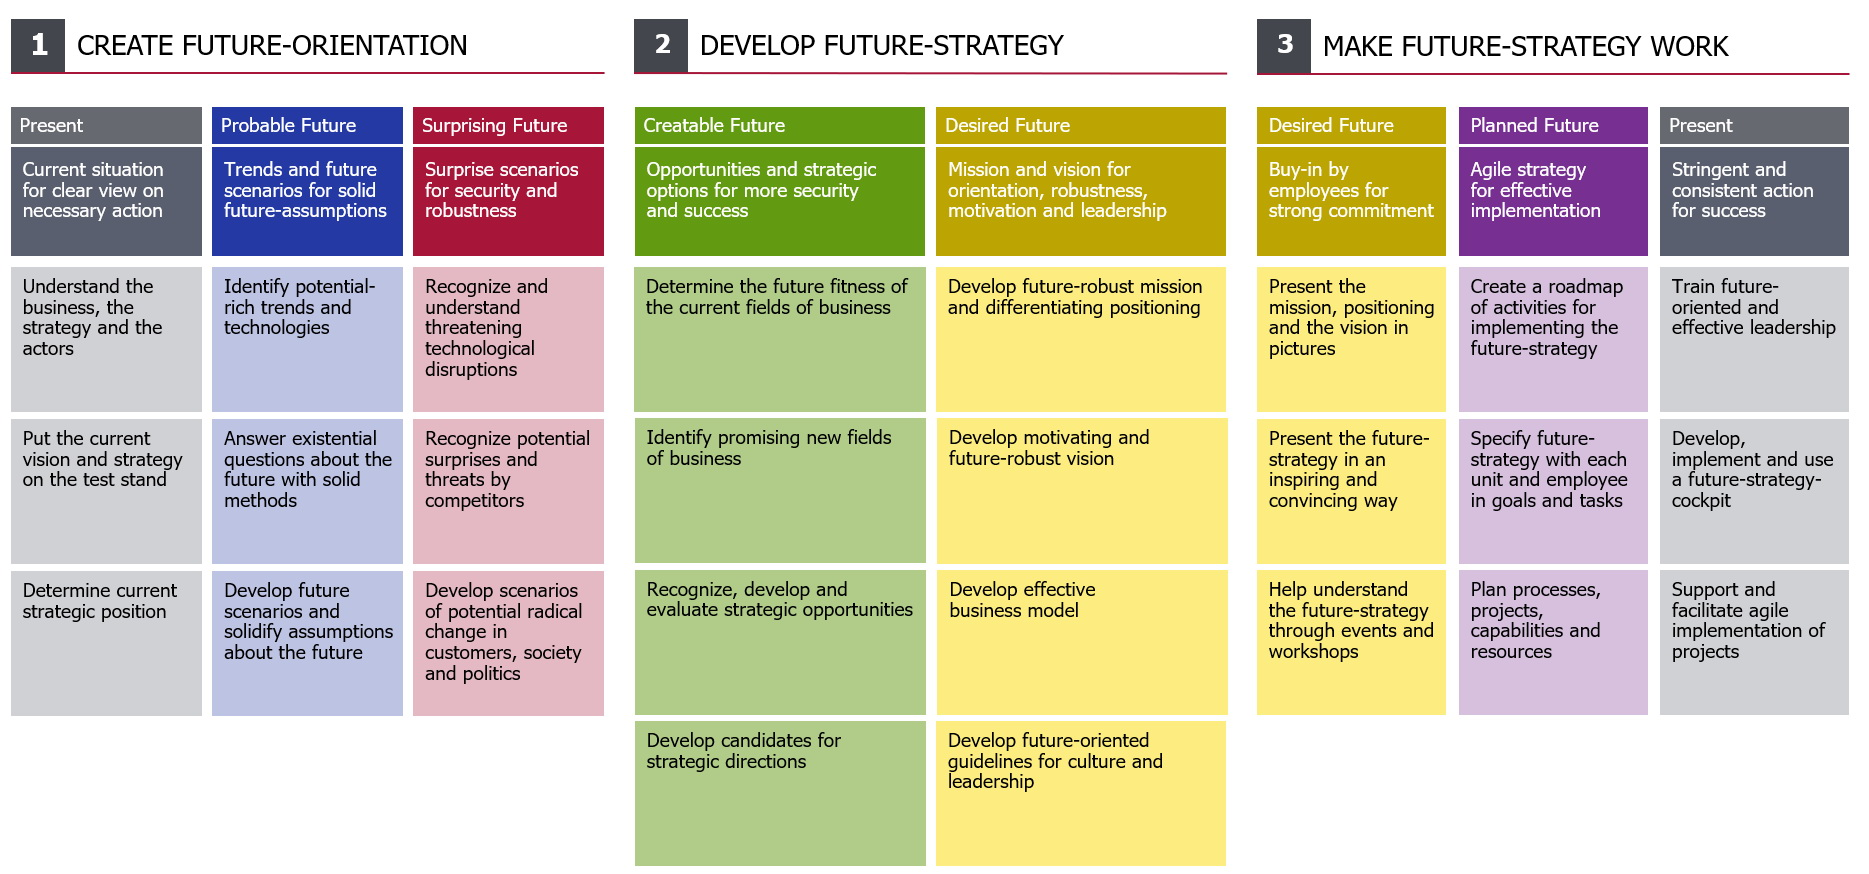 Your way to a robust, motivating and effective future-strategy